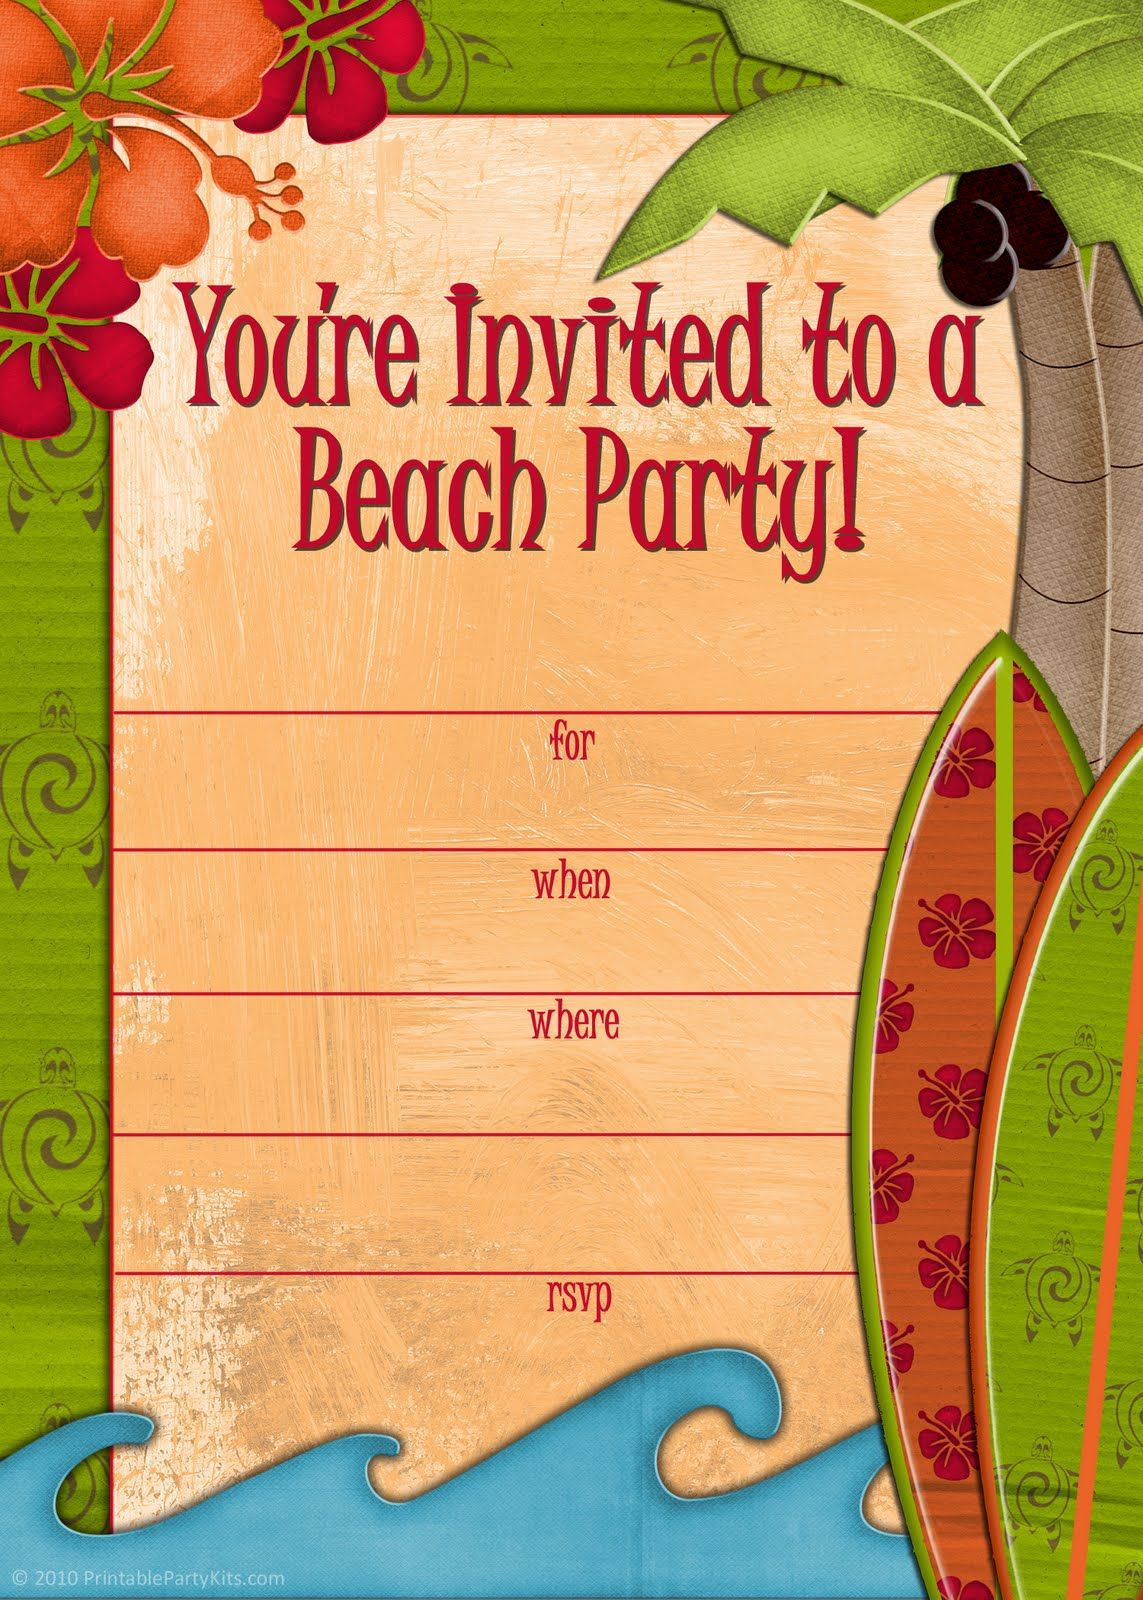 Free printable beach party invitations from free printable beach party invitations from printablepartyinvitationsspot monicamarmolfo Images